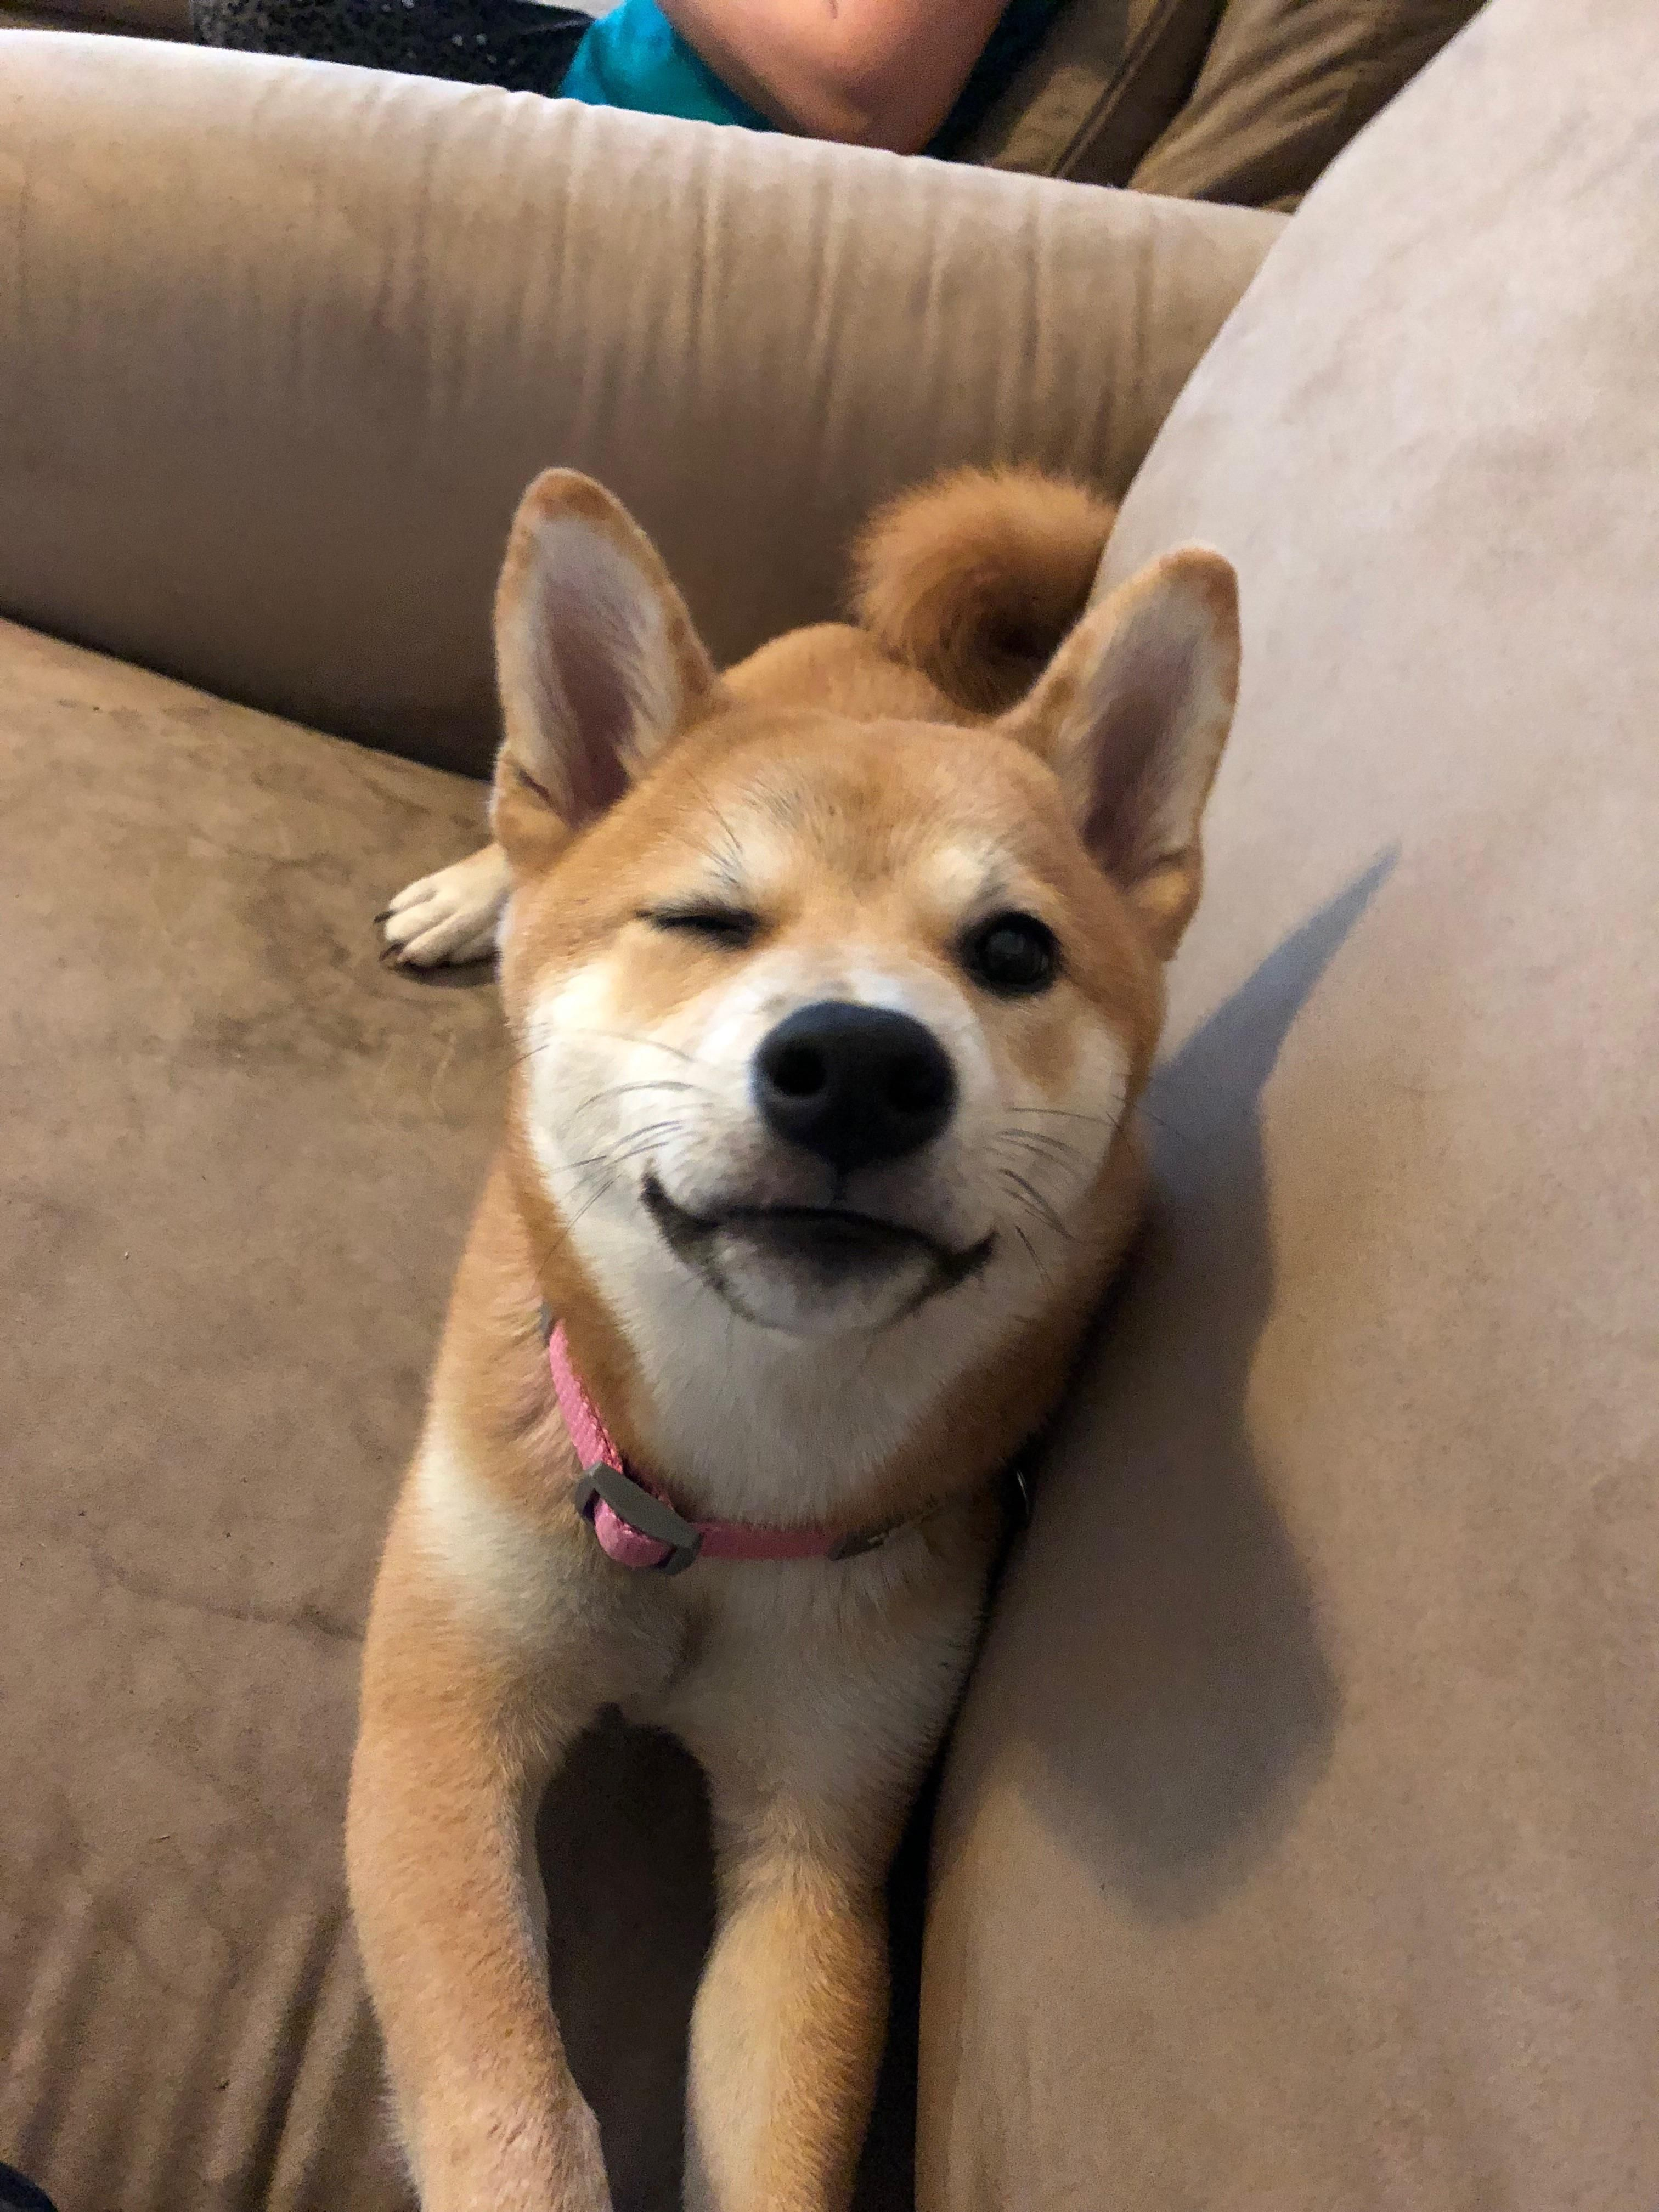 Here S An Old Picture Of My Shibe Winking At Me Shibainu Shibainupuppies Shiba Inu Shiba Inu Dog Cute Dogs